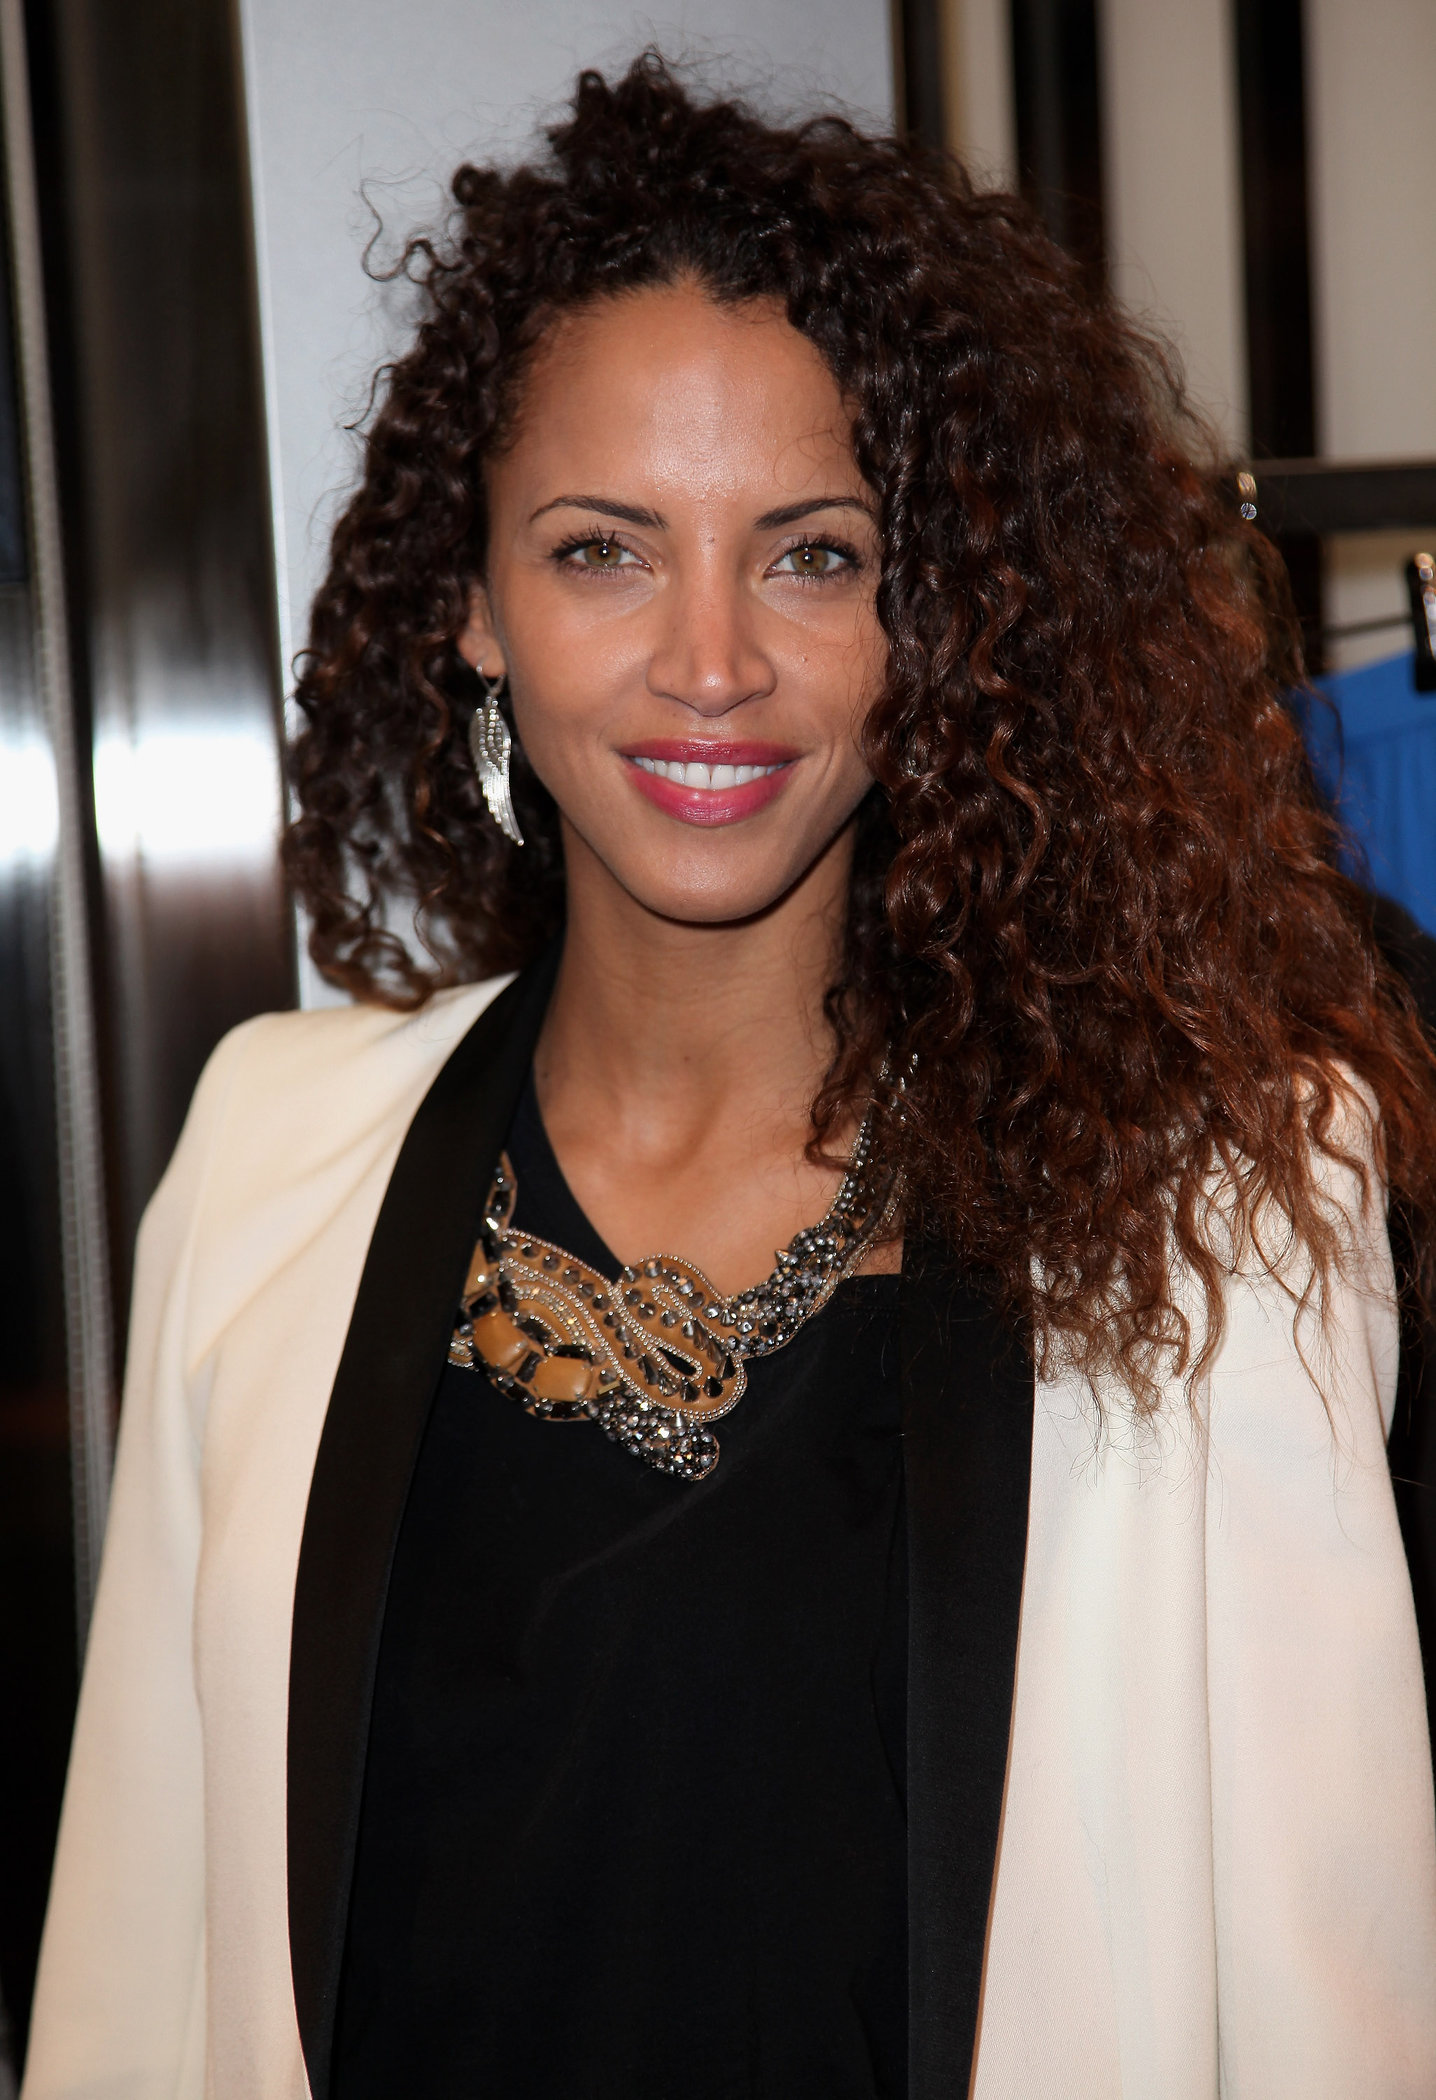 Noémie Lenoir Kabuki Welcome Alexander Wang Party (Dec 13, 2012)